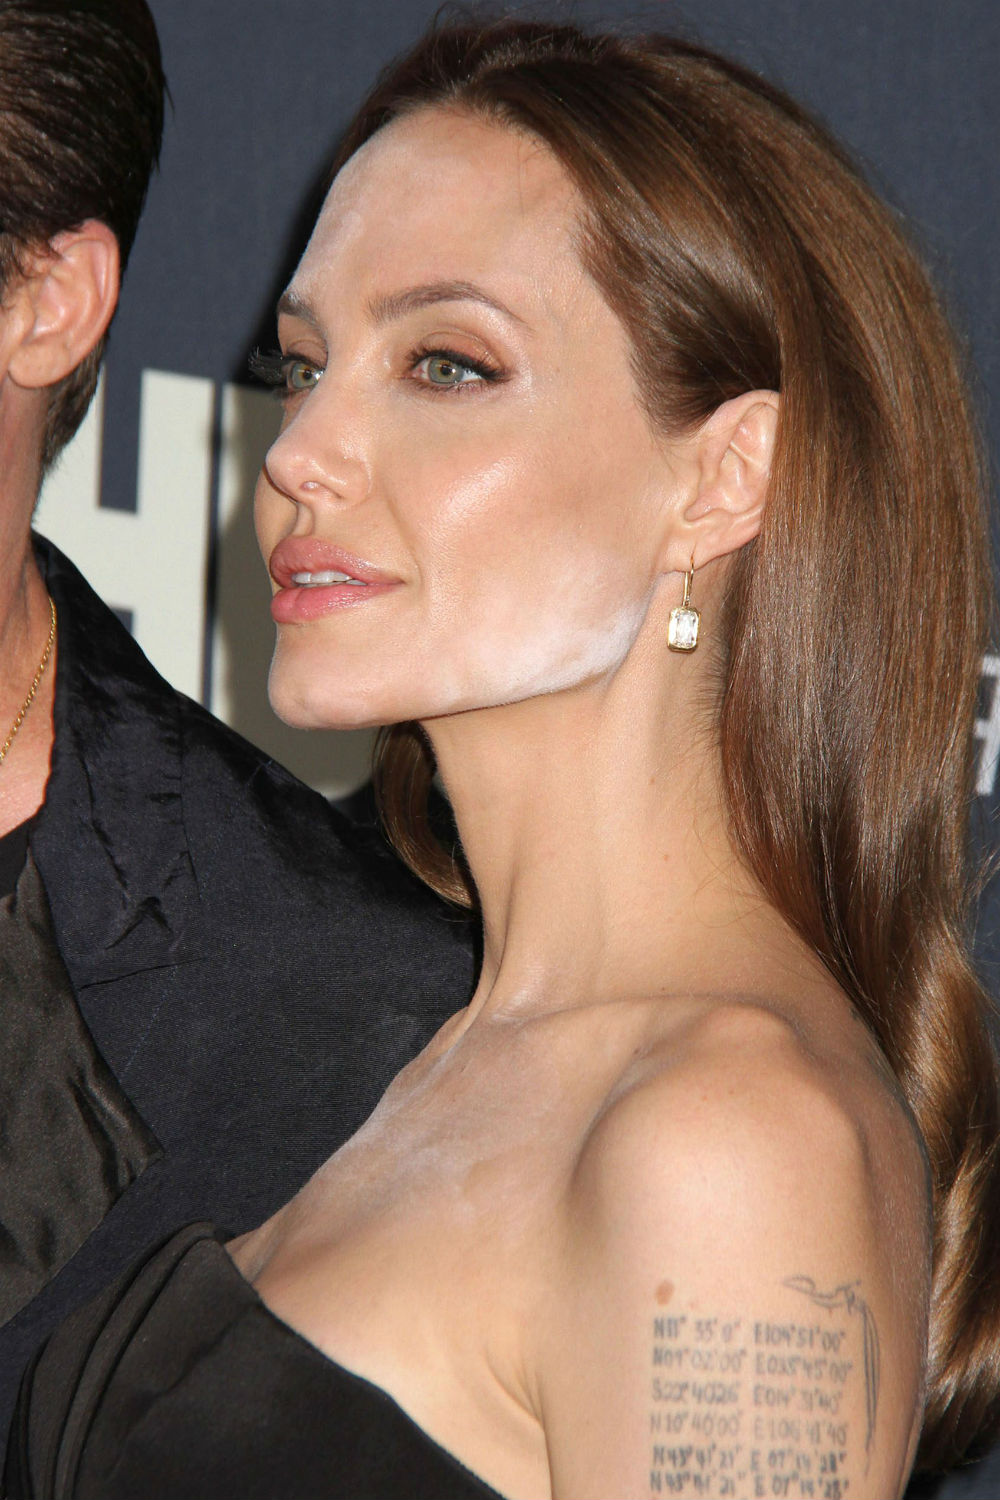 Angelina Jolie All Sex Videos angelina jolie makeup mistake: this is what went wrong